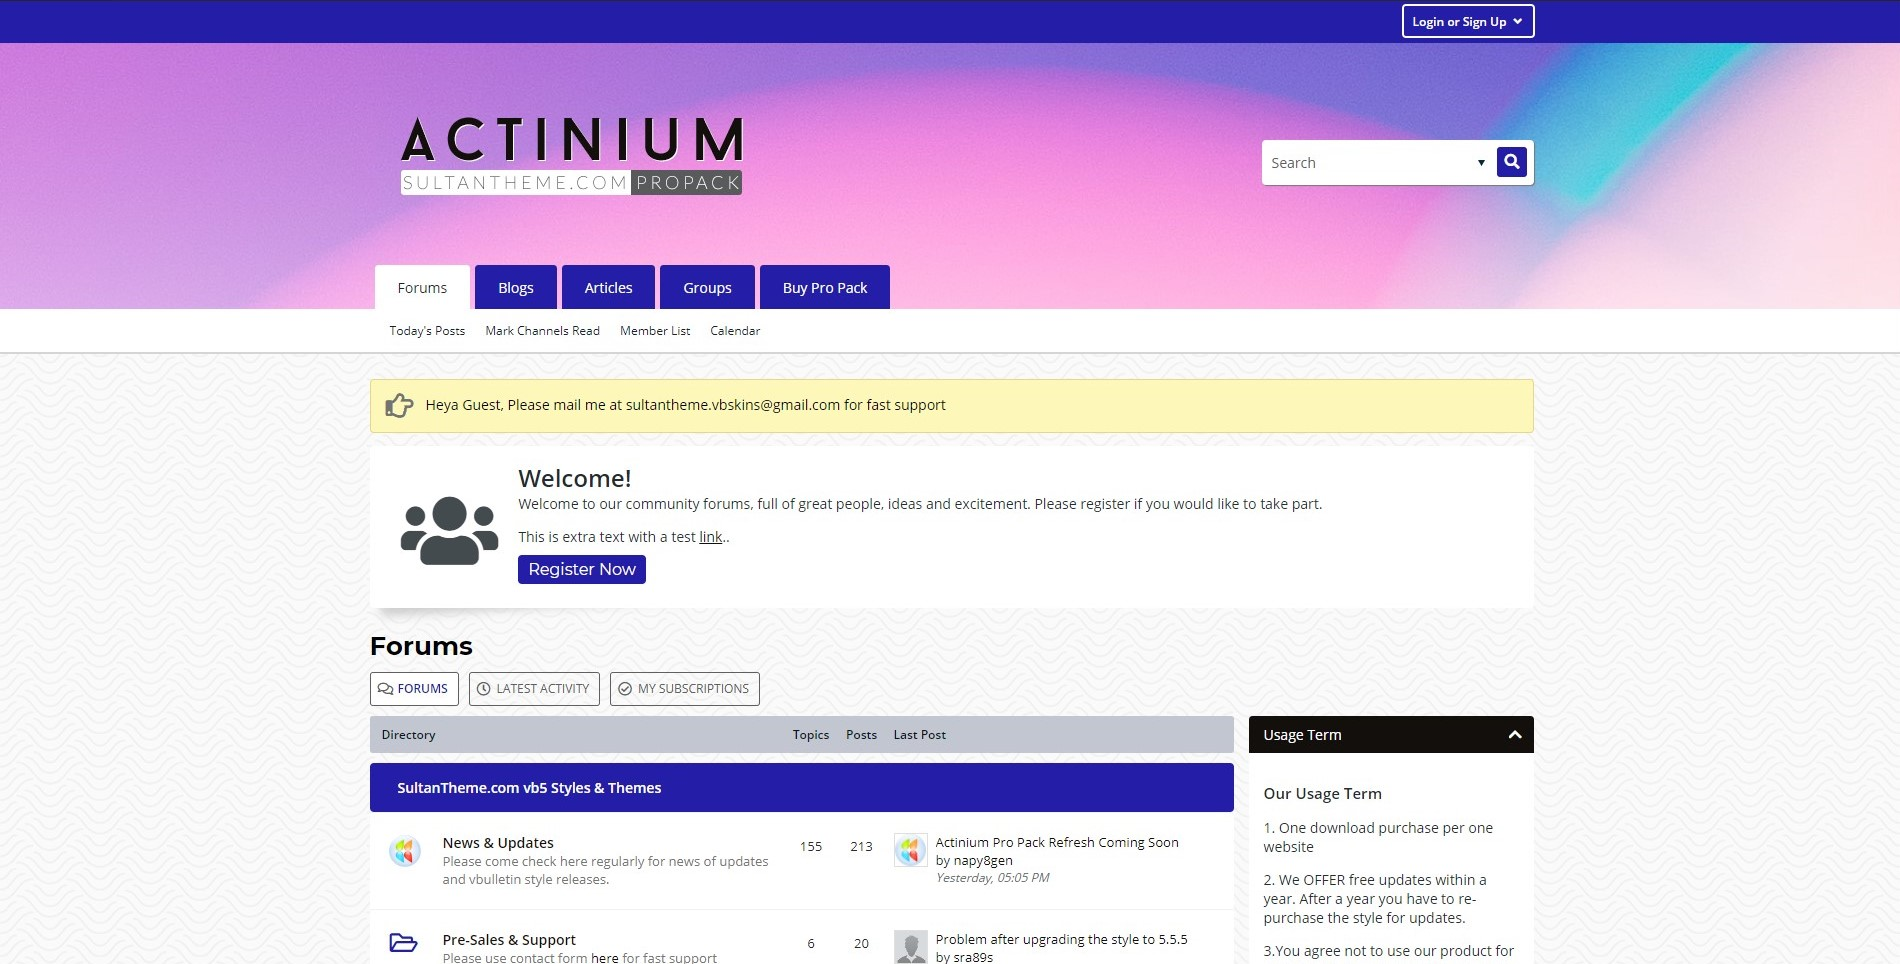 actinium1 - Pro Pack Themes Updated - Actinium Design Refreshed!